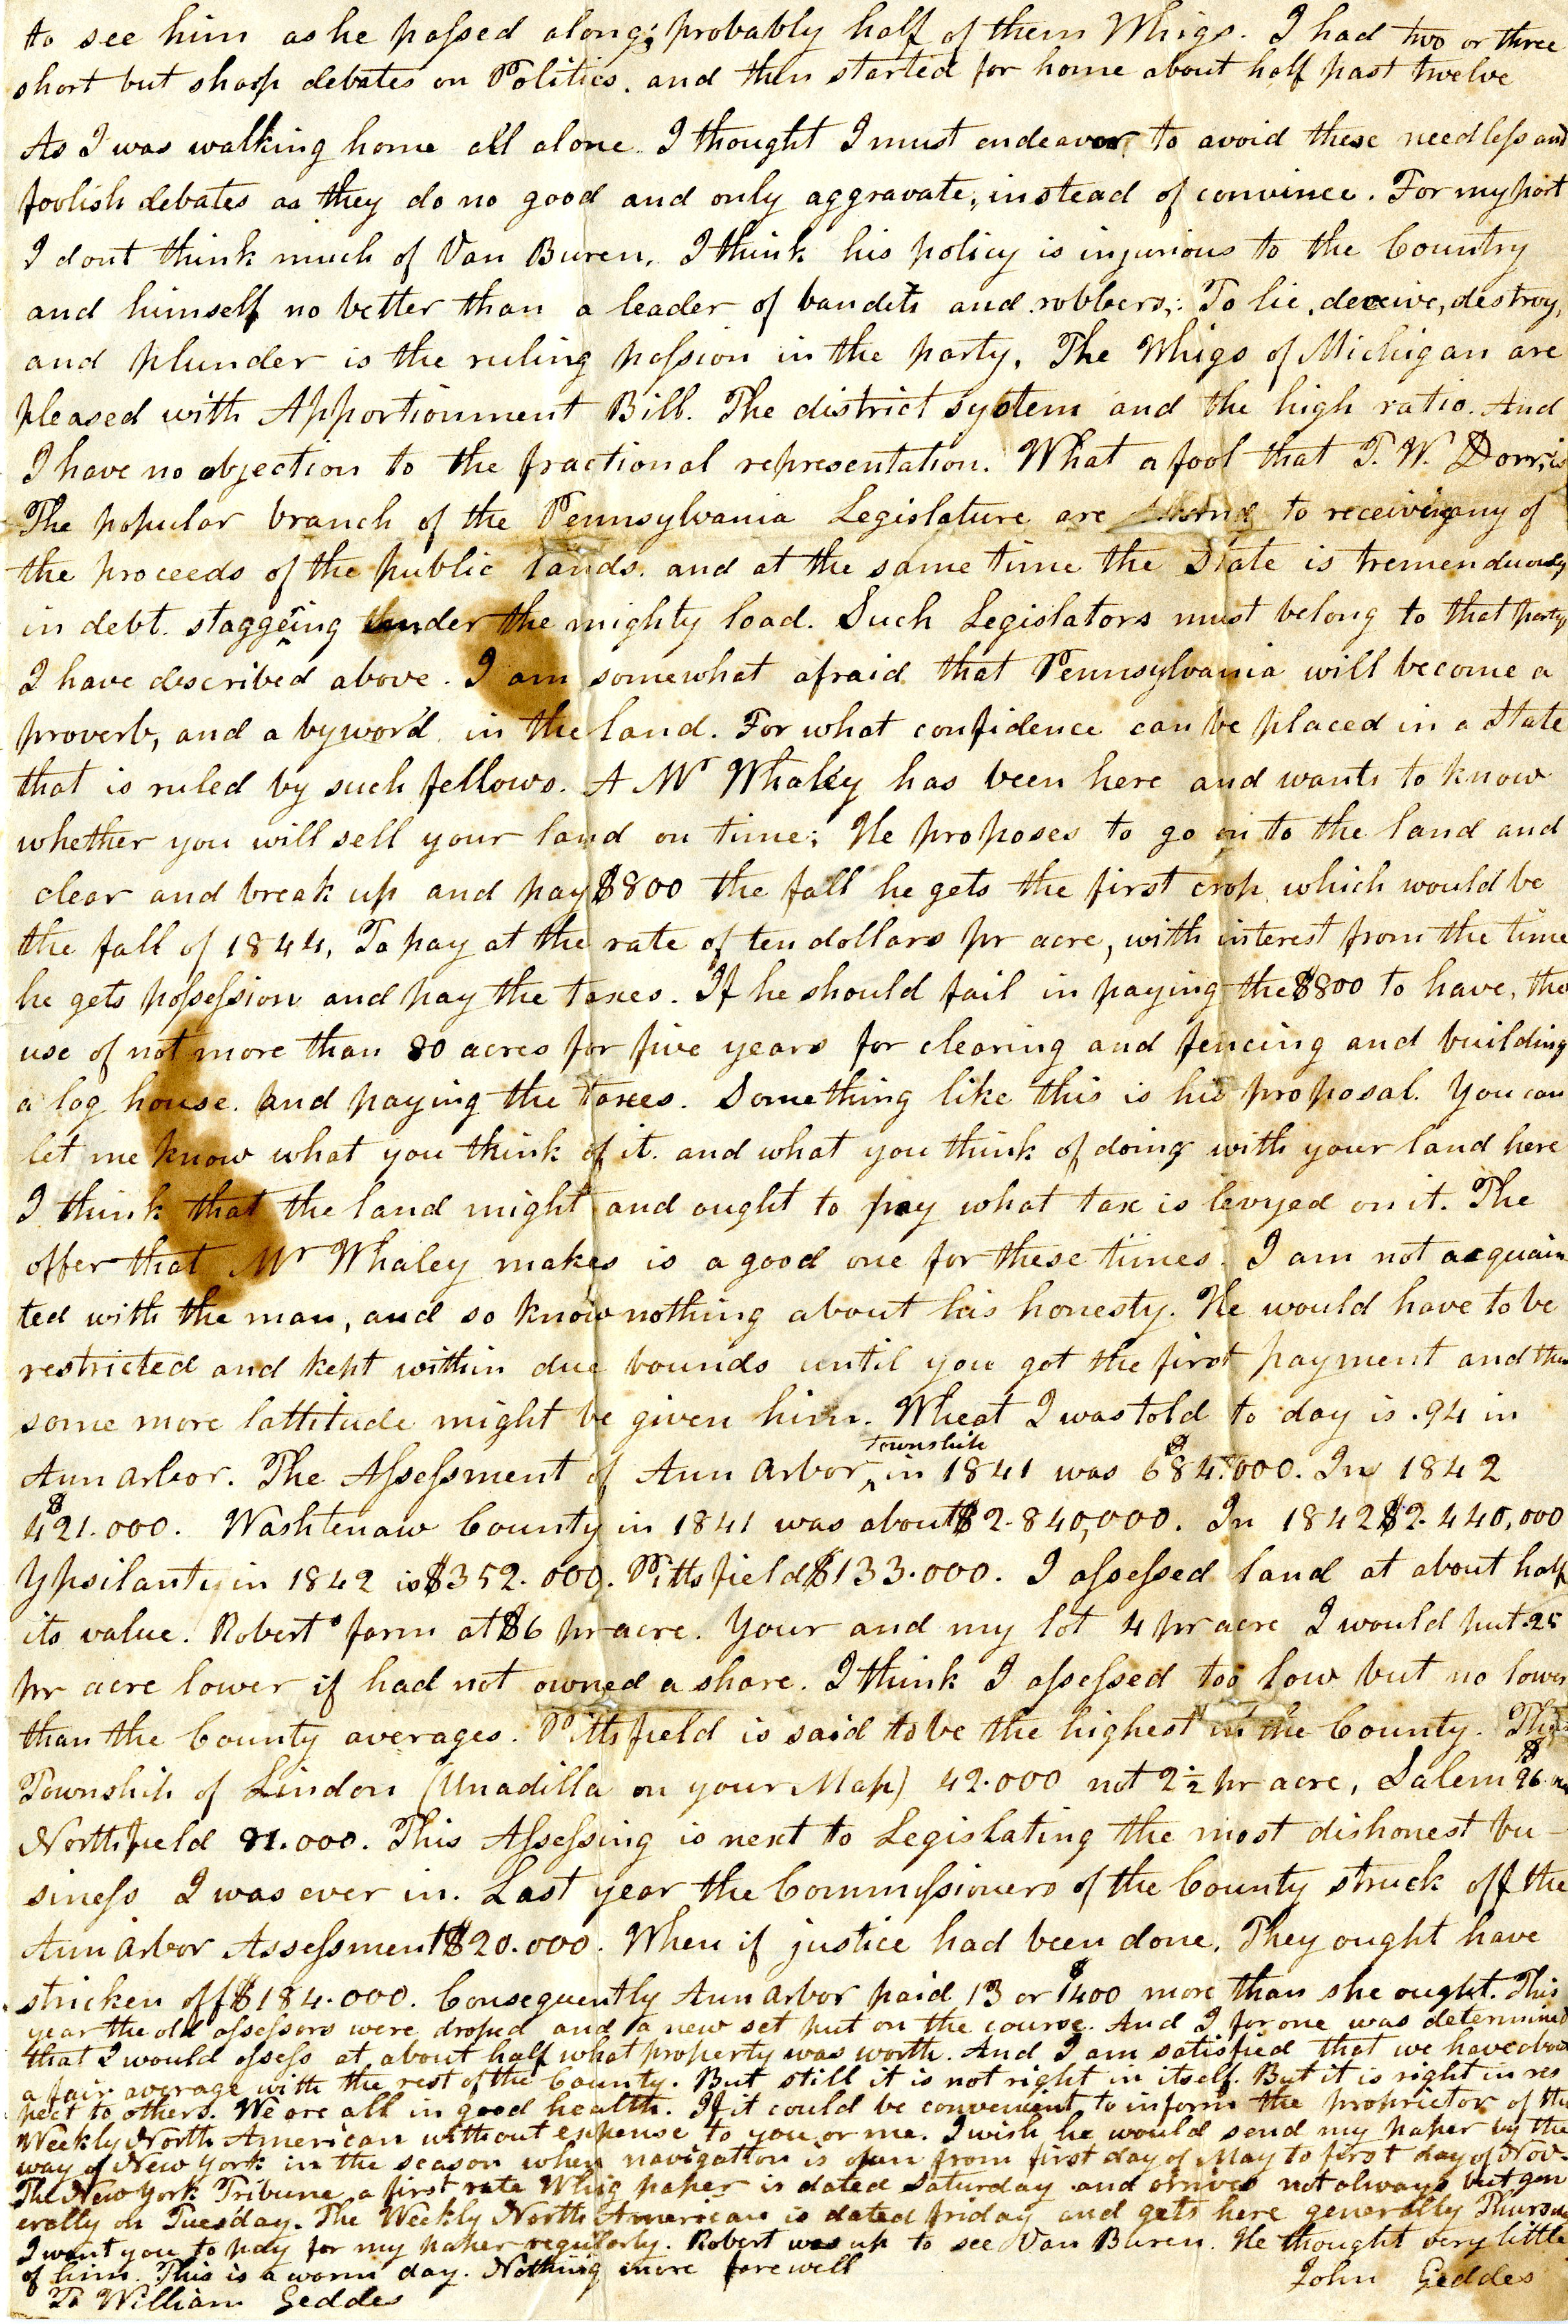 Letter From John Geddes to William Geddes, July 12, 1842 image